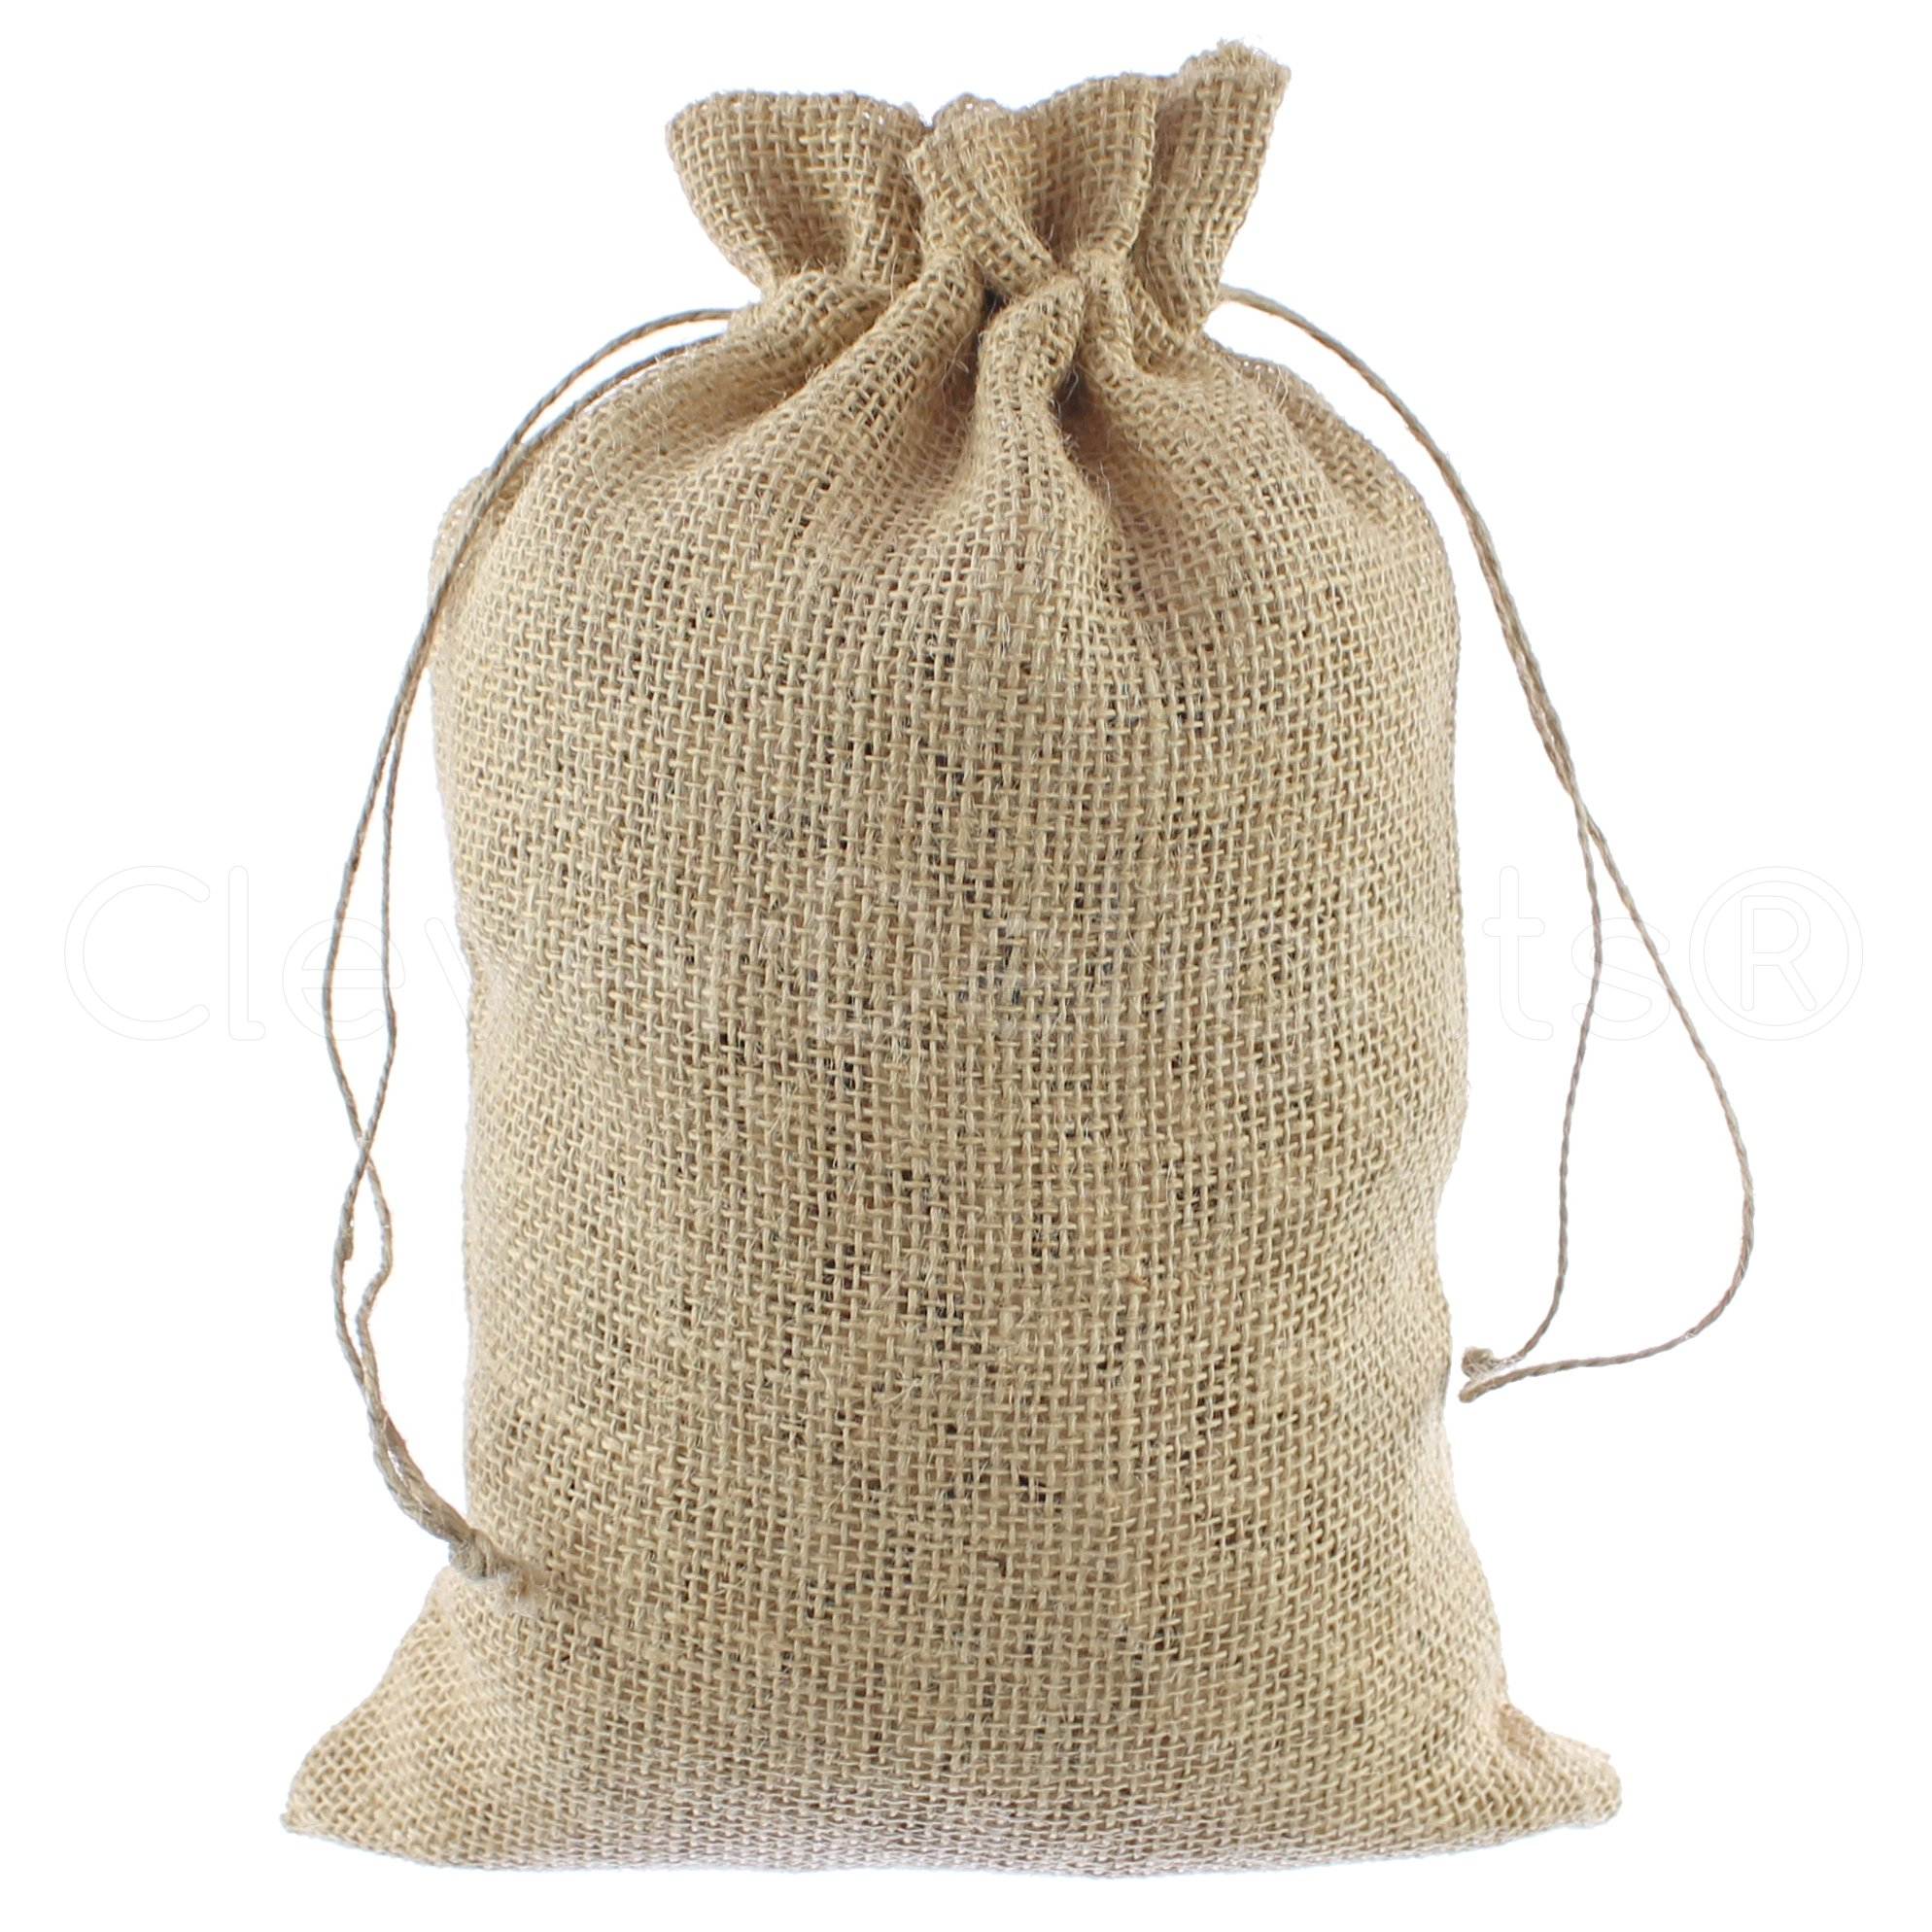 CleverDelights 8'' x 12'' Burlap Bags with Natural Jute Drawstring - 50 Pack - Burlap Pouch Sack Favor Bag for Showers Weddings Parties and Receptions - 8x12 inch